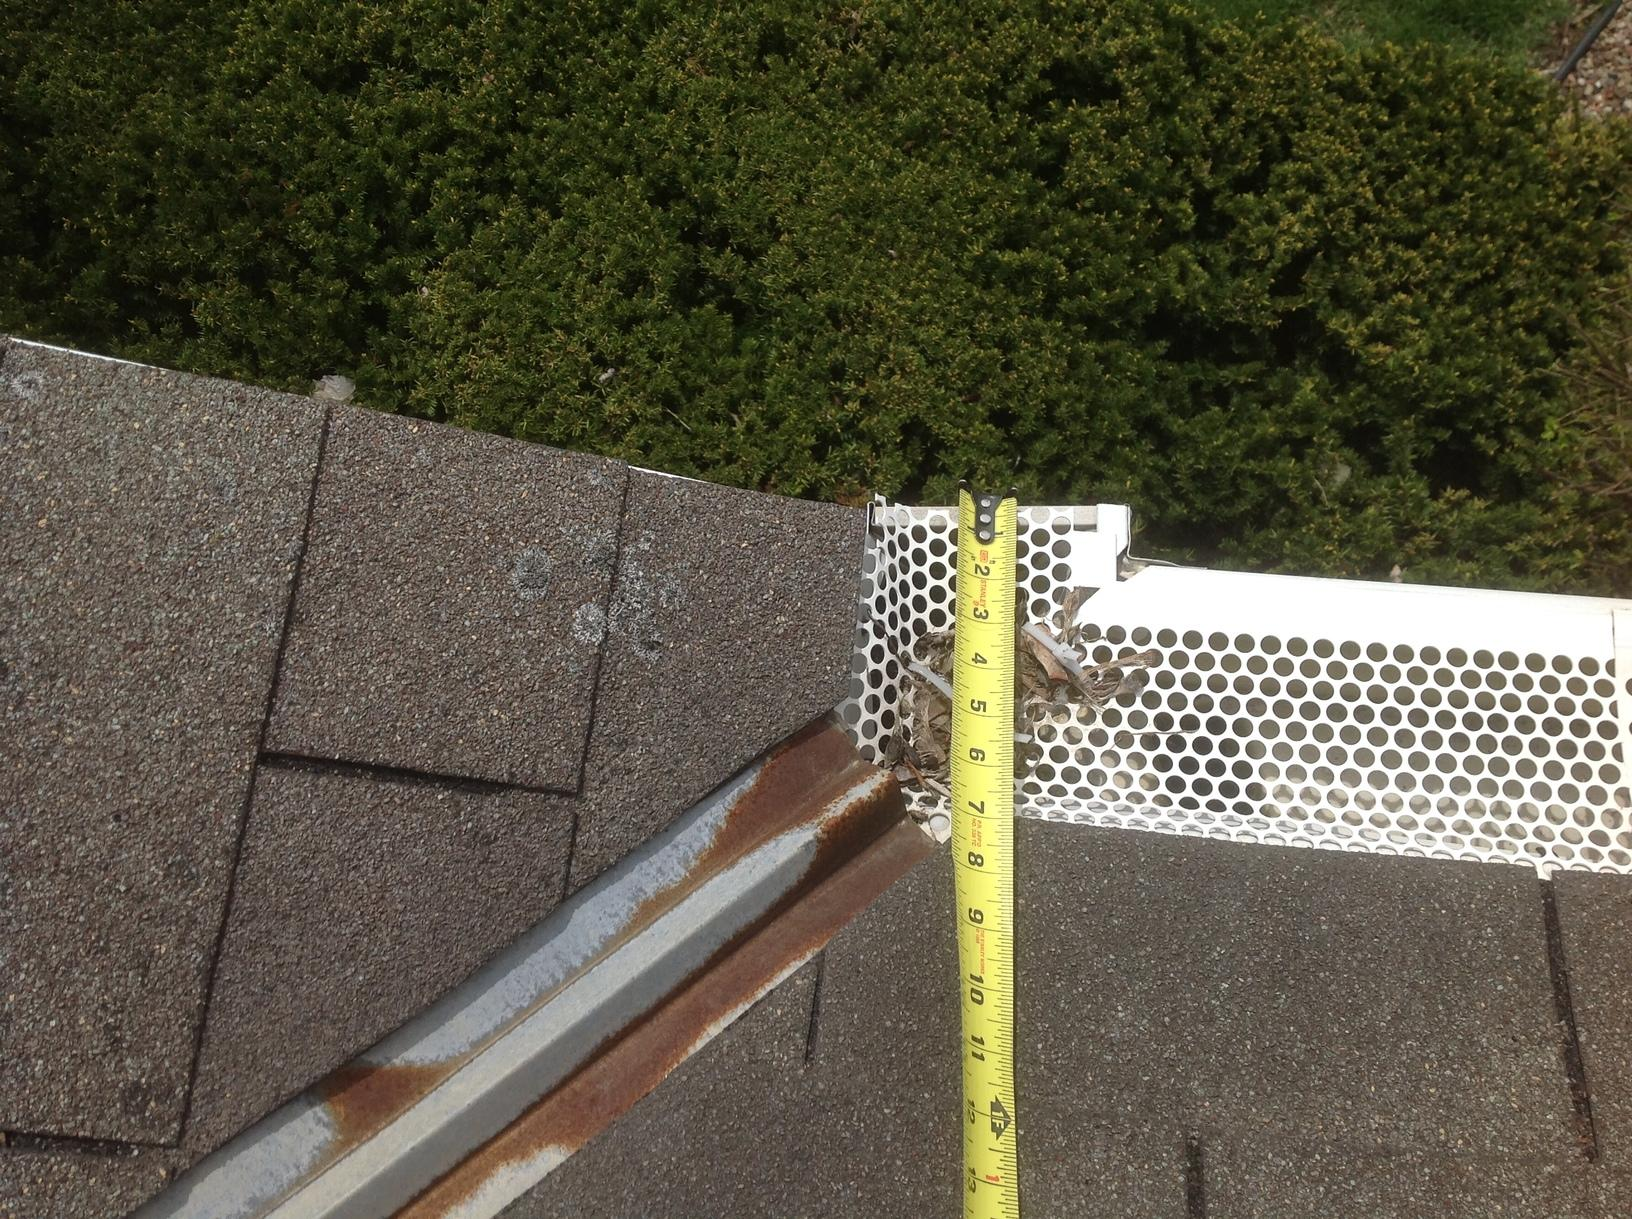 New GAF Timberline Roof and LeafGuard Gutters Installed on home in Allouez, WI - Before Photo